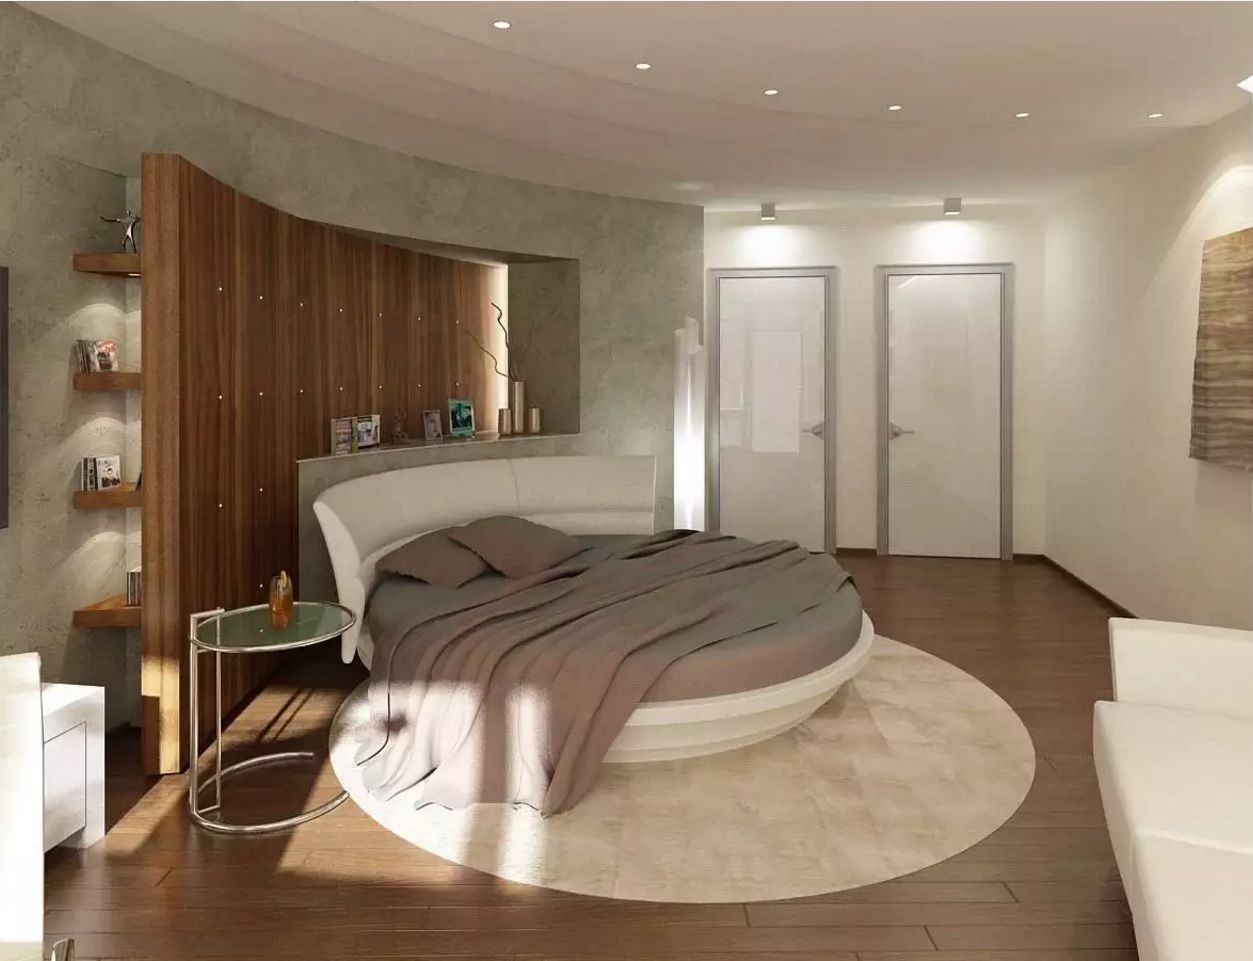 circle bed in unique bedroom interior design small design ideas rh smalldesignideas com